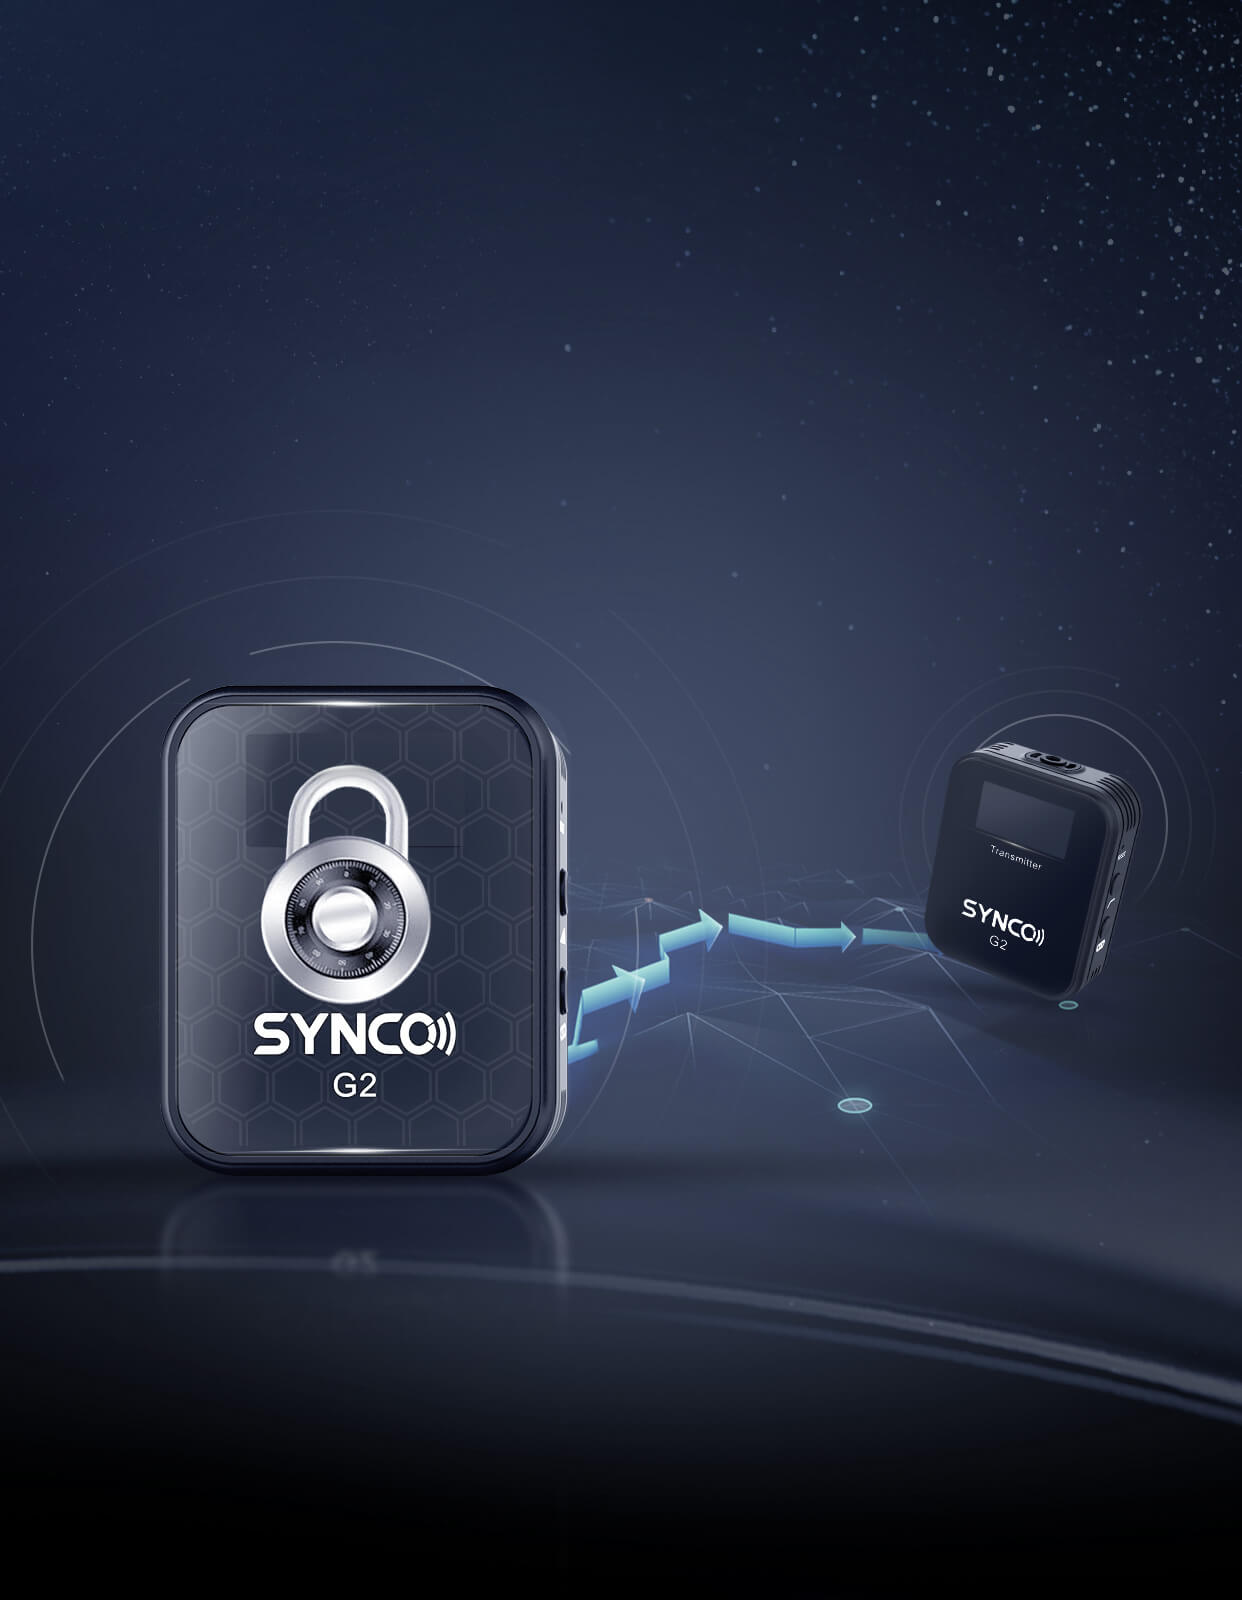 SYNCO G2(A1) Upgraded Algorithm for More Stable, Safe Transmission